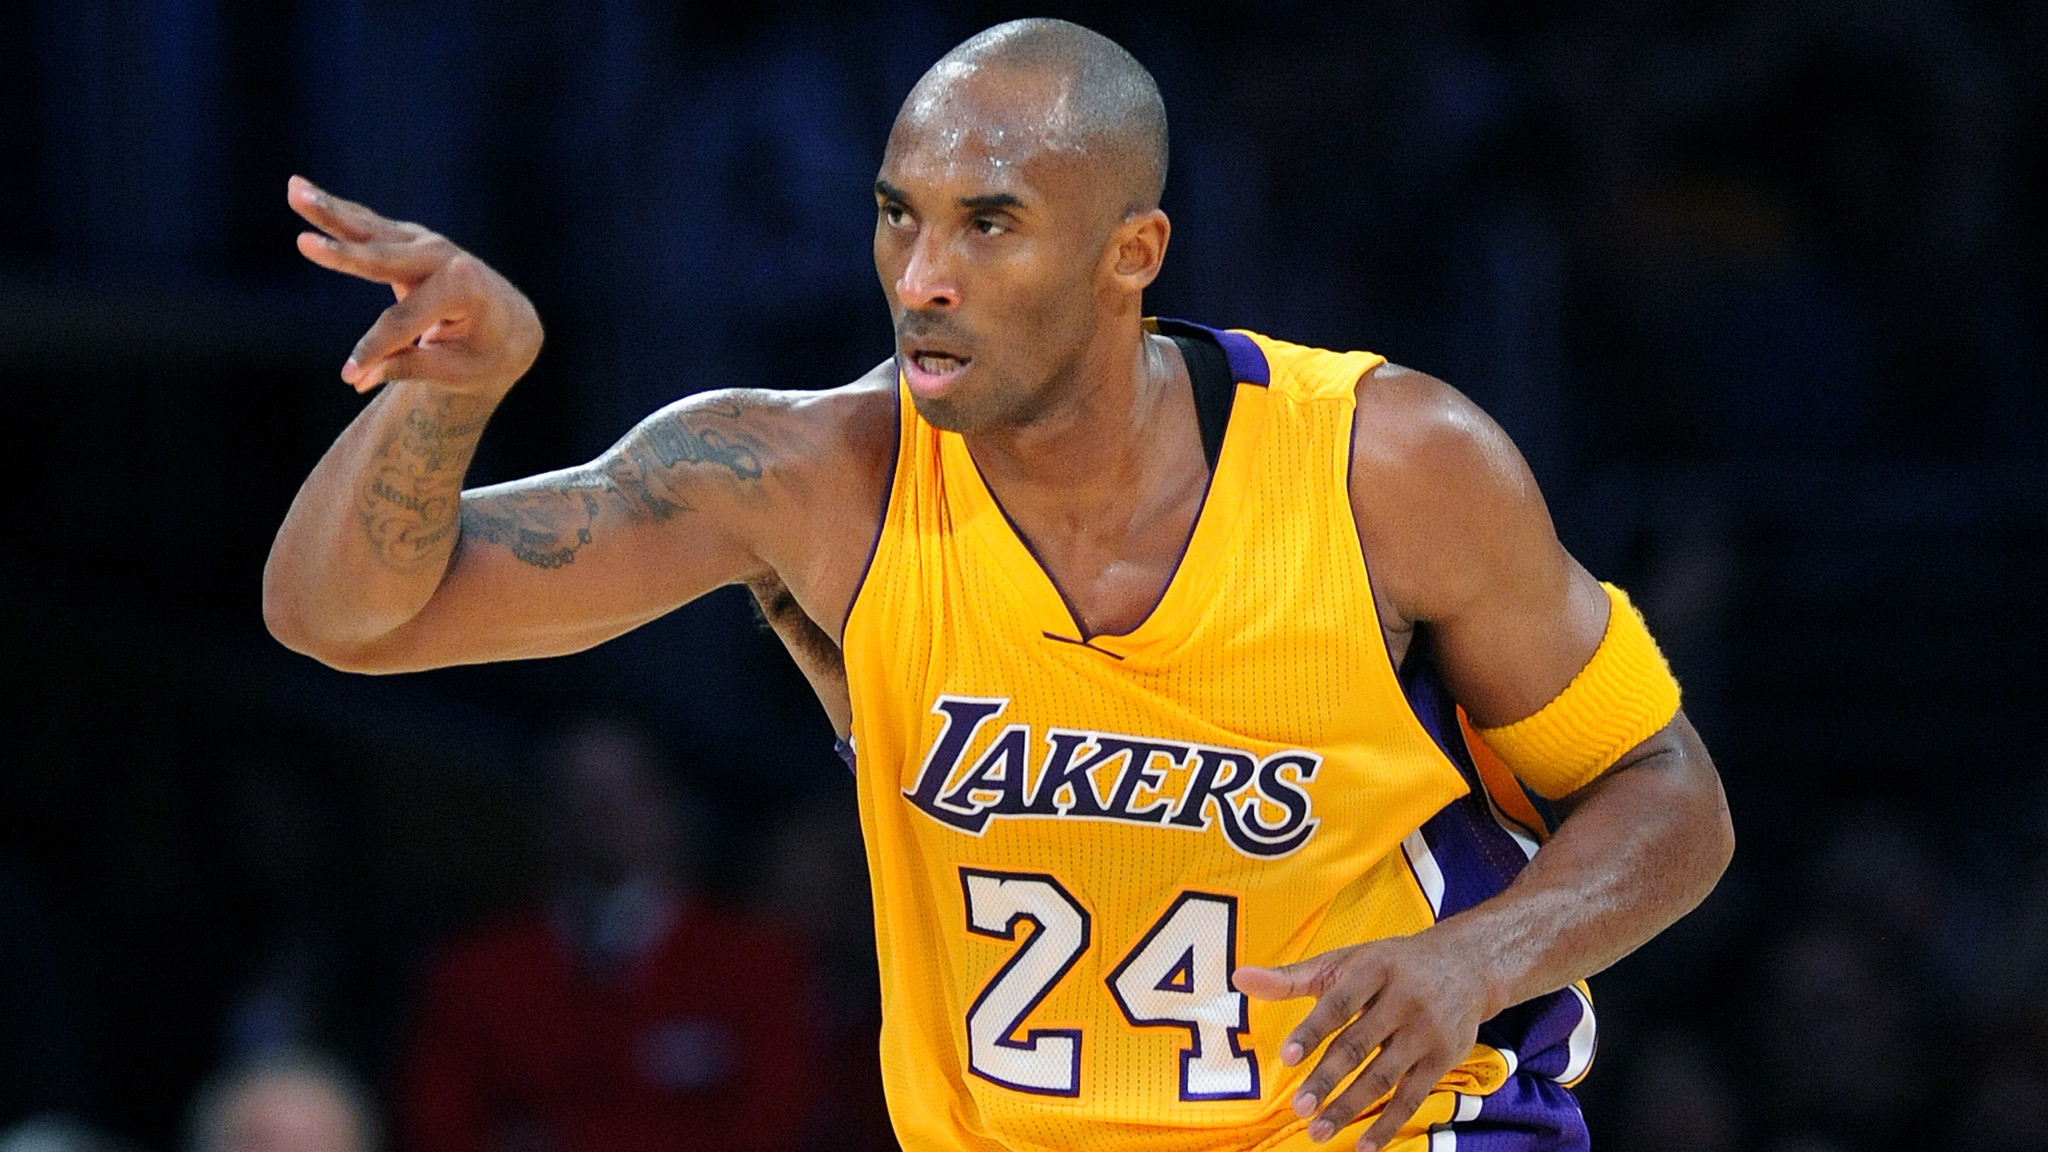 Kobe Bryant to retire after this season: 'My body knows it's time to say goodbye'